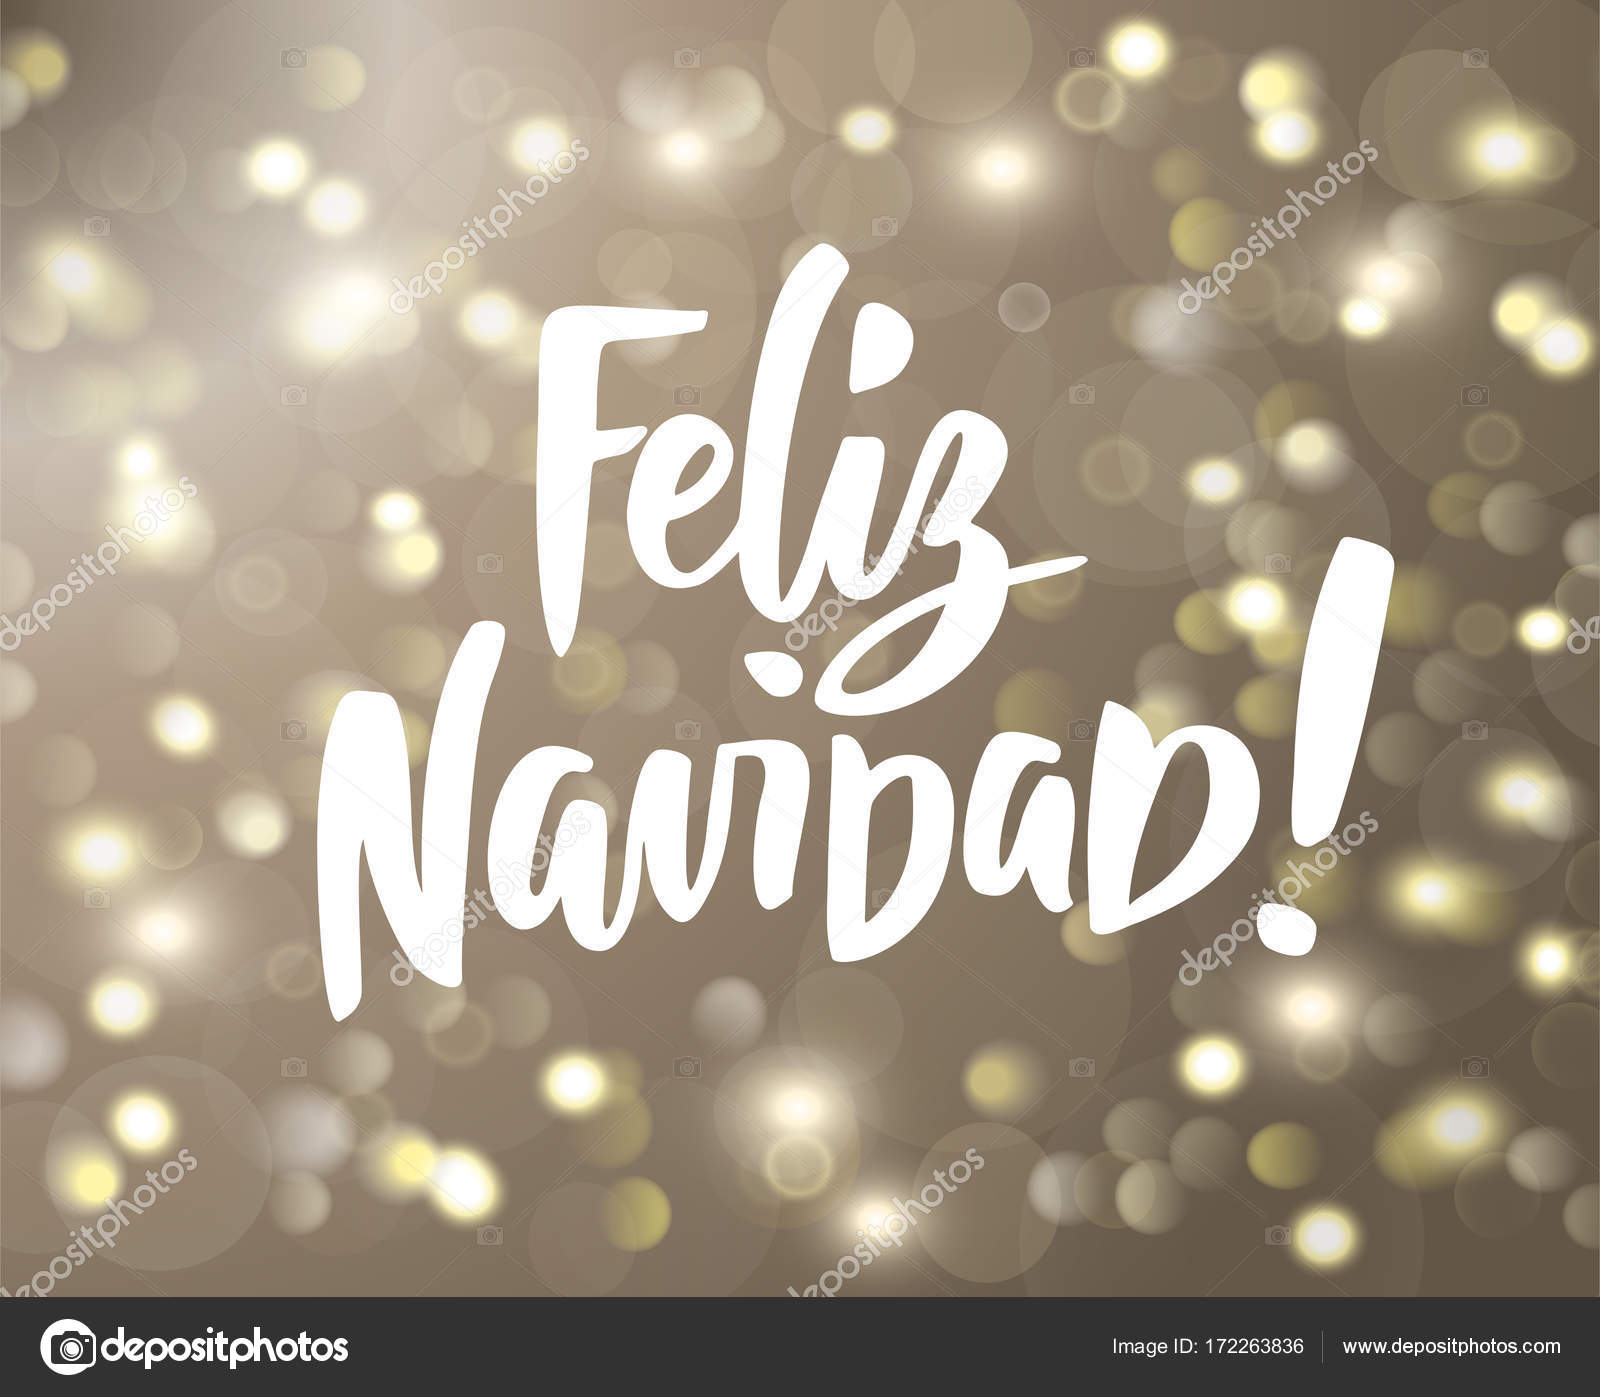 Feliz navidad text holiday greetings spanish quote isolated on holiday greetings spanish quote isolated on white great for christmas cards kristyandbryce Images